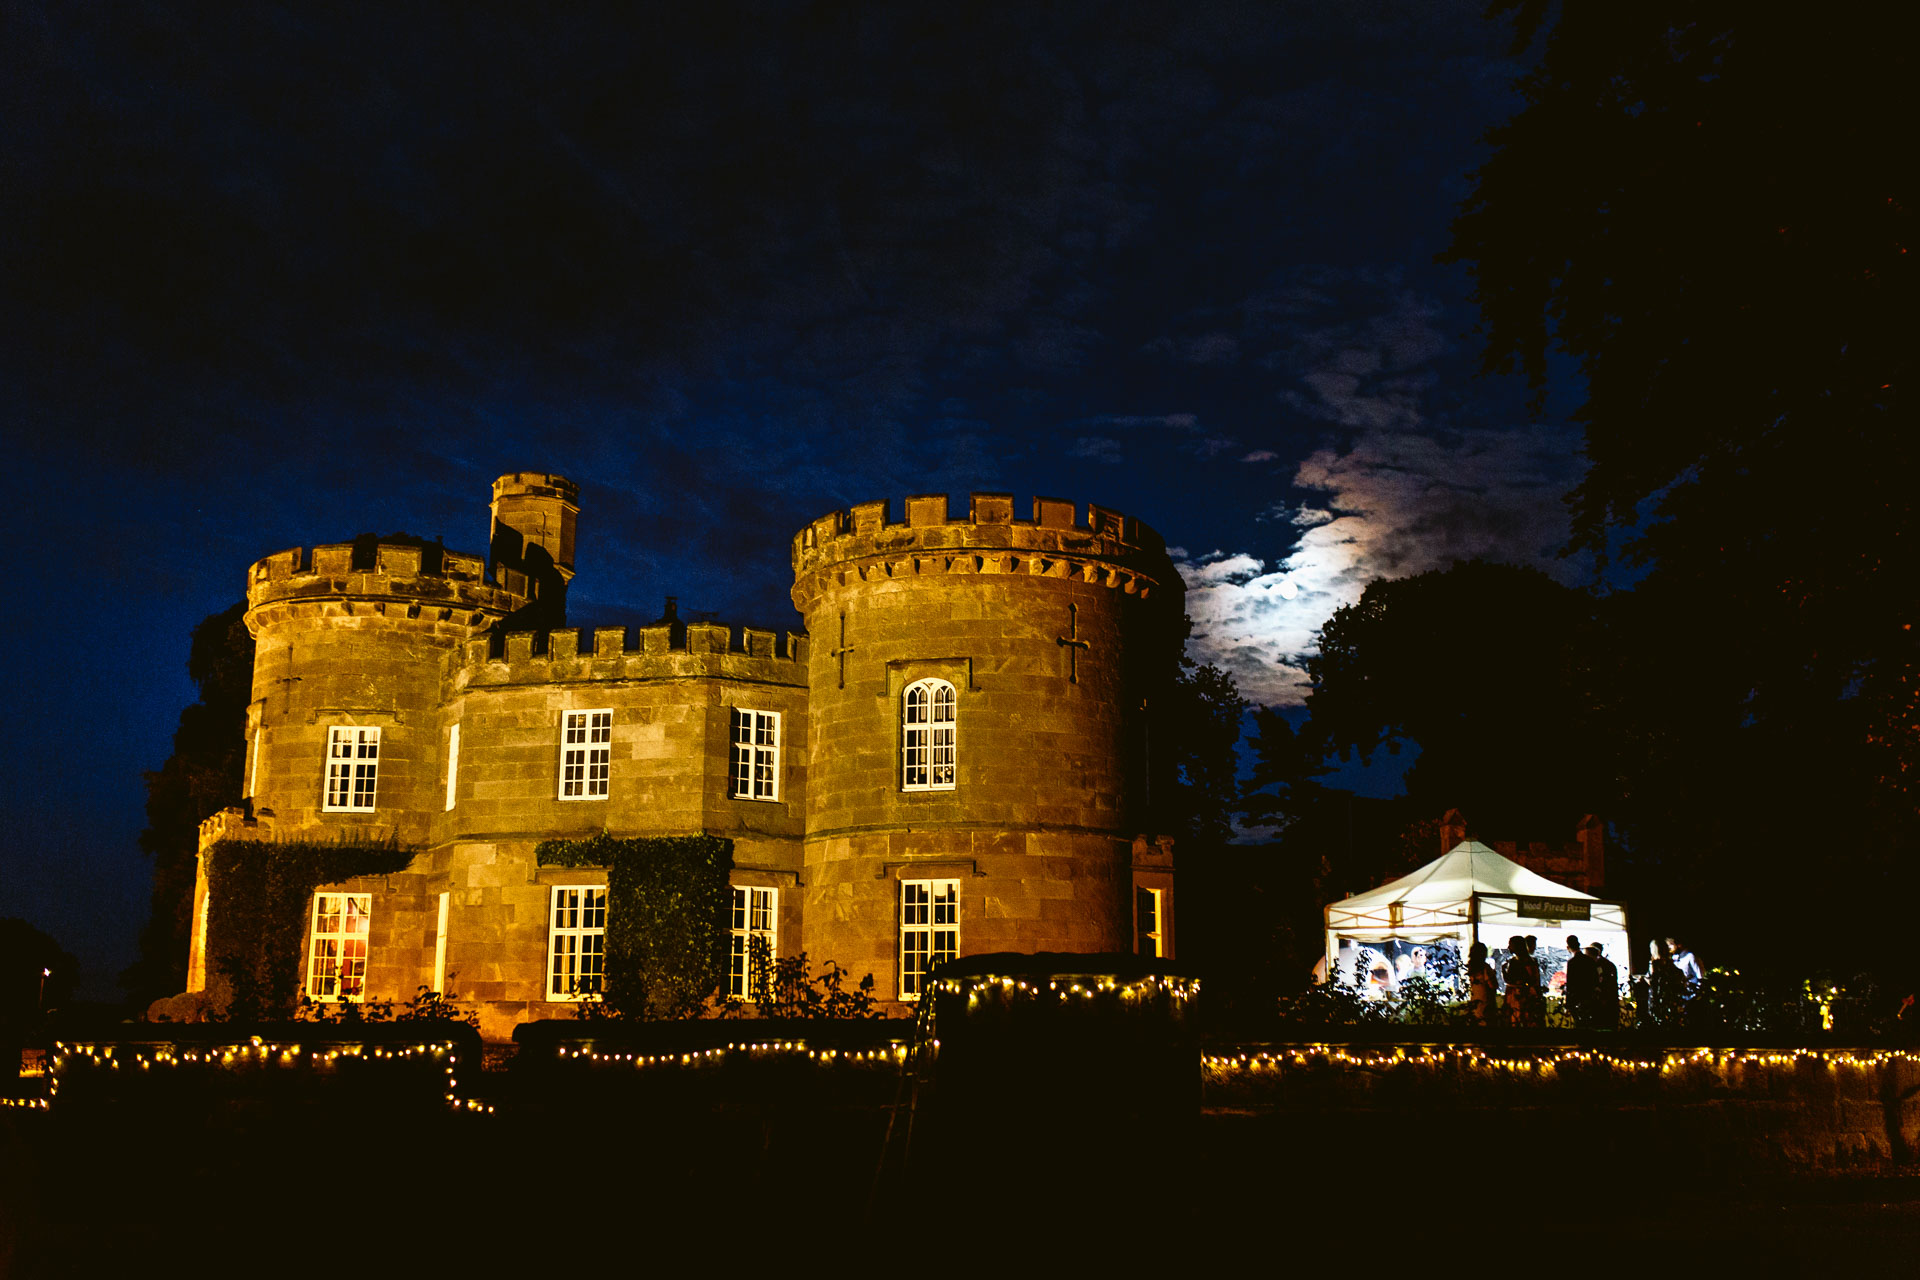 The Citadel wedding Shropshire Sarah_Jane and Steve view of the wedding venue in the night